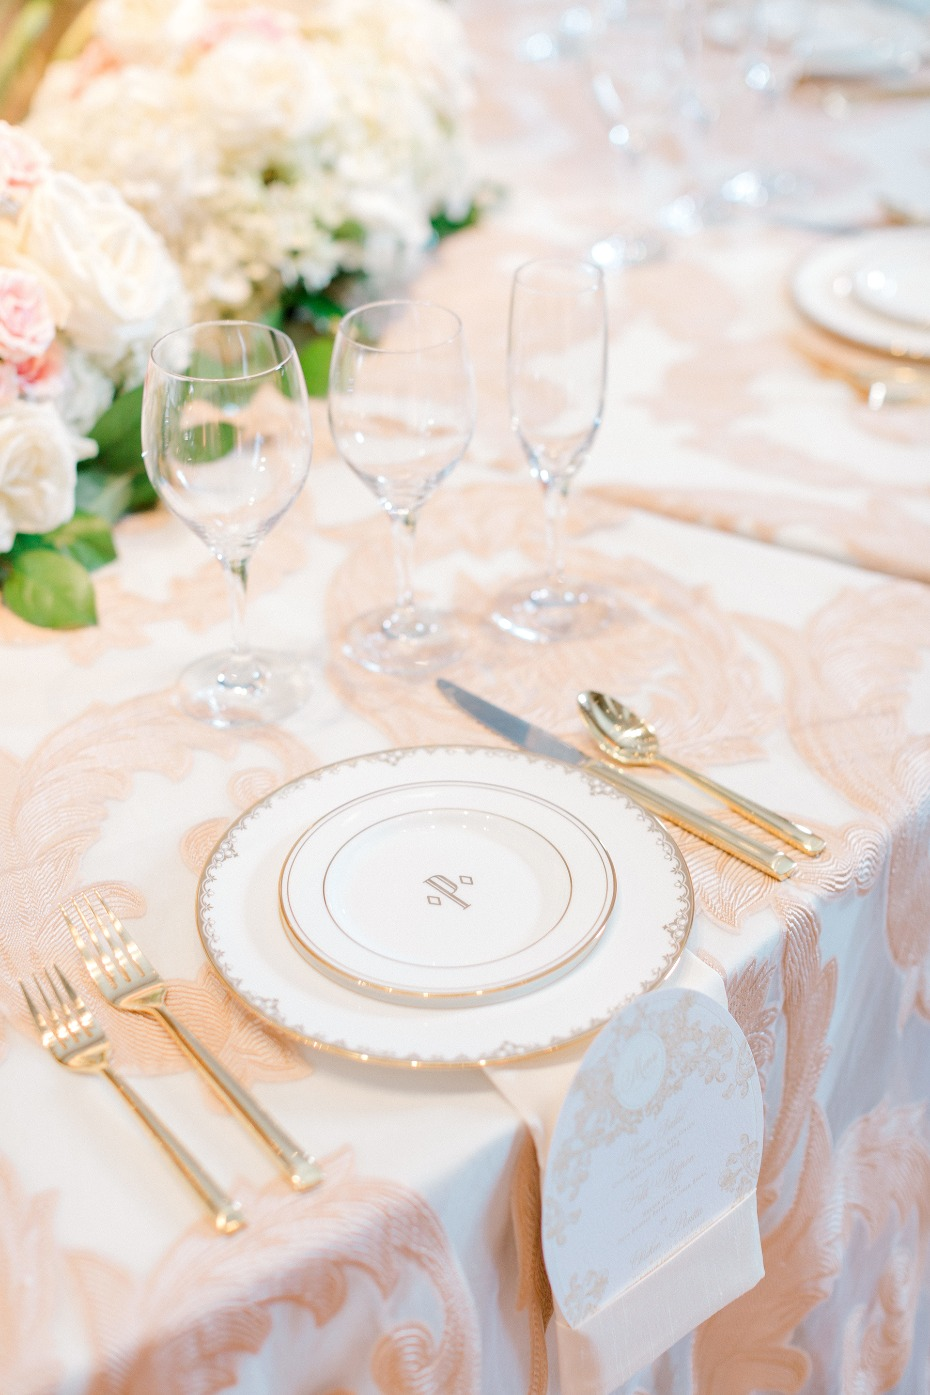 Fancy place setting in blush and gold